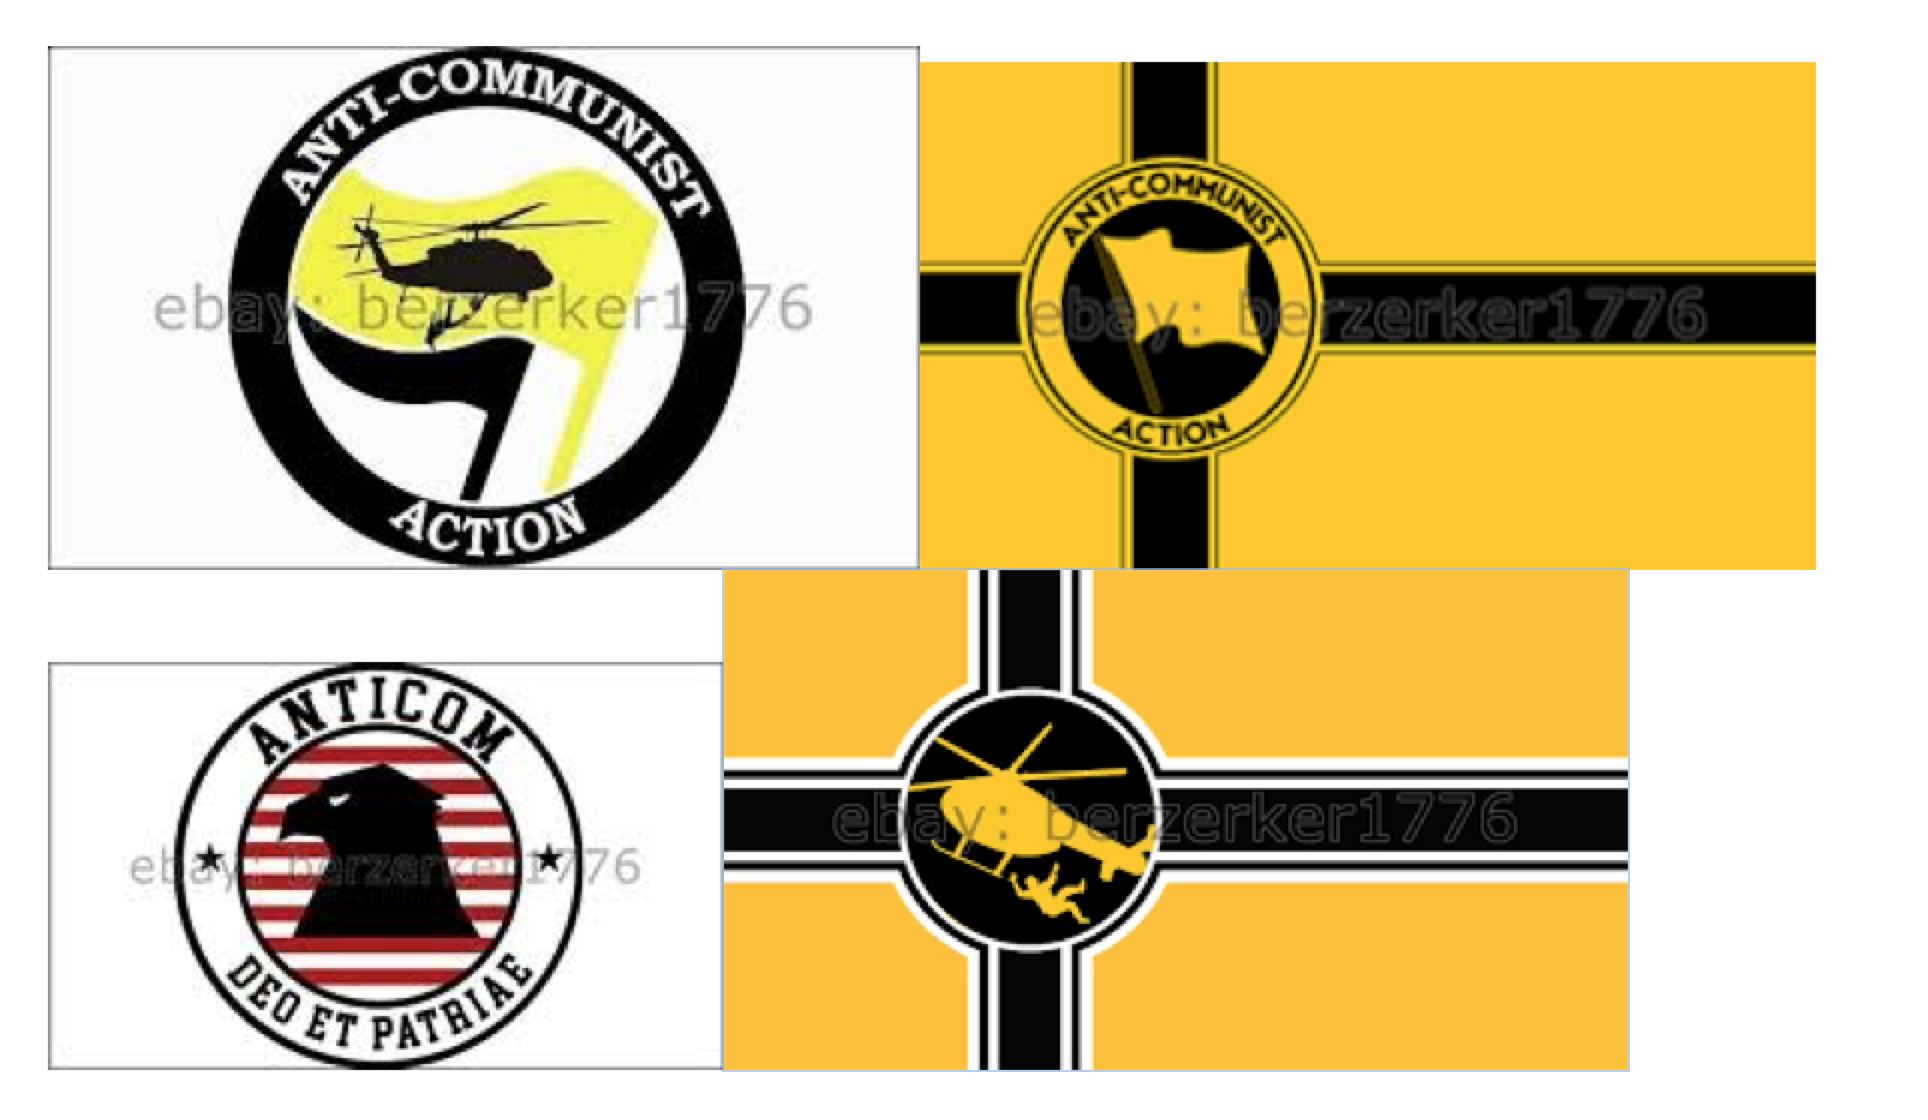 Flags and other symbols used by far right groups in charlottesville anti communist action biocorpaavc Choice Image